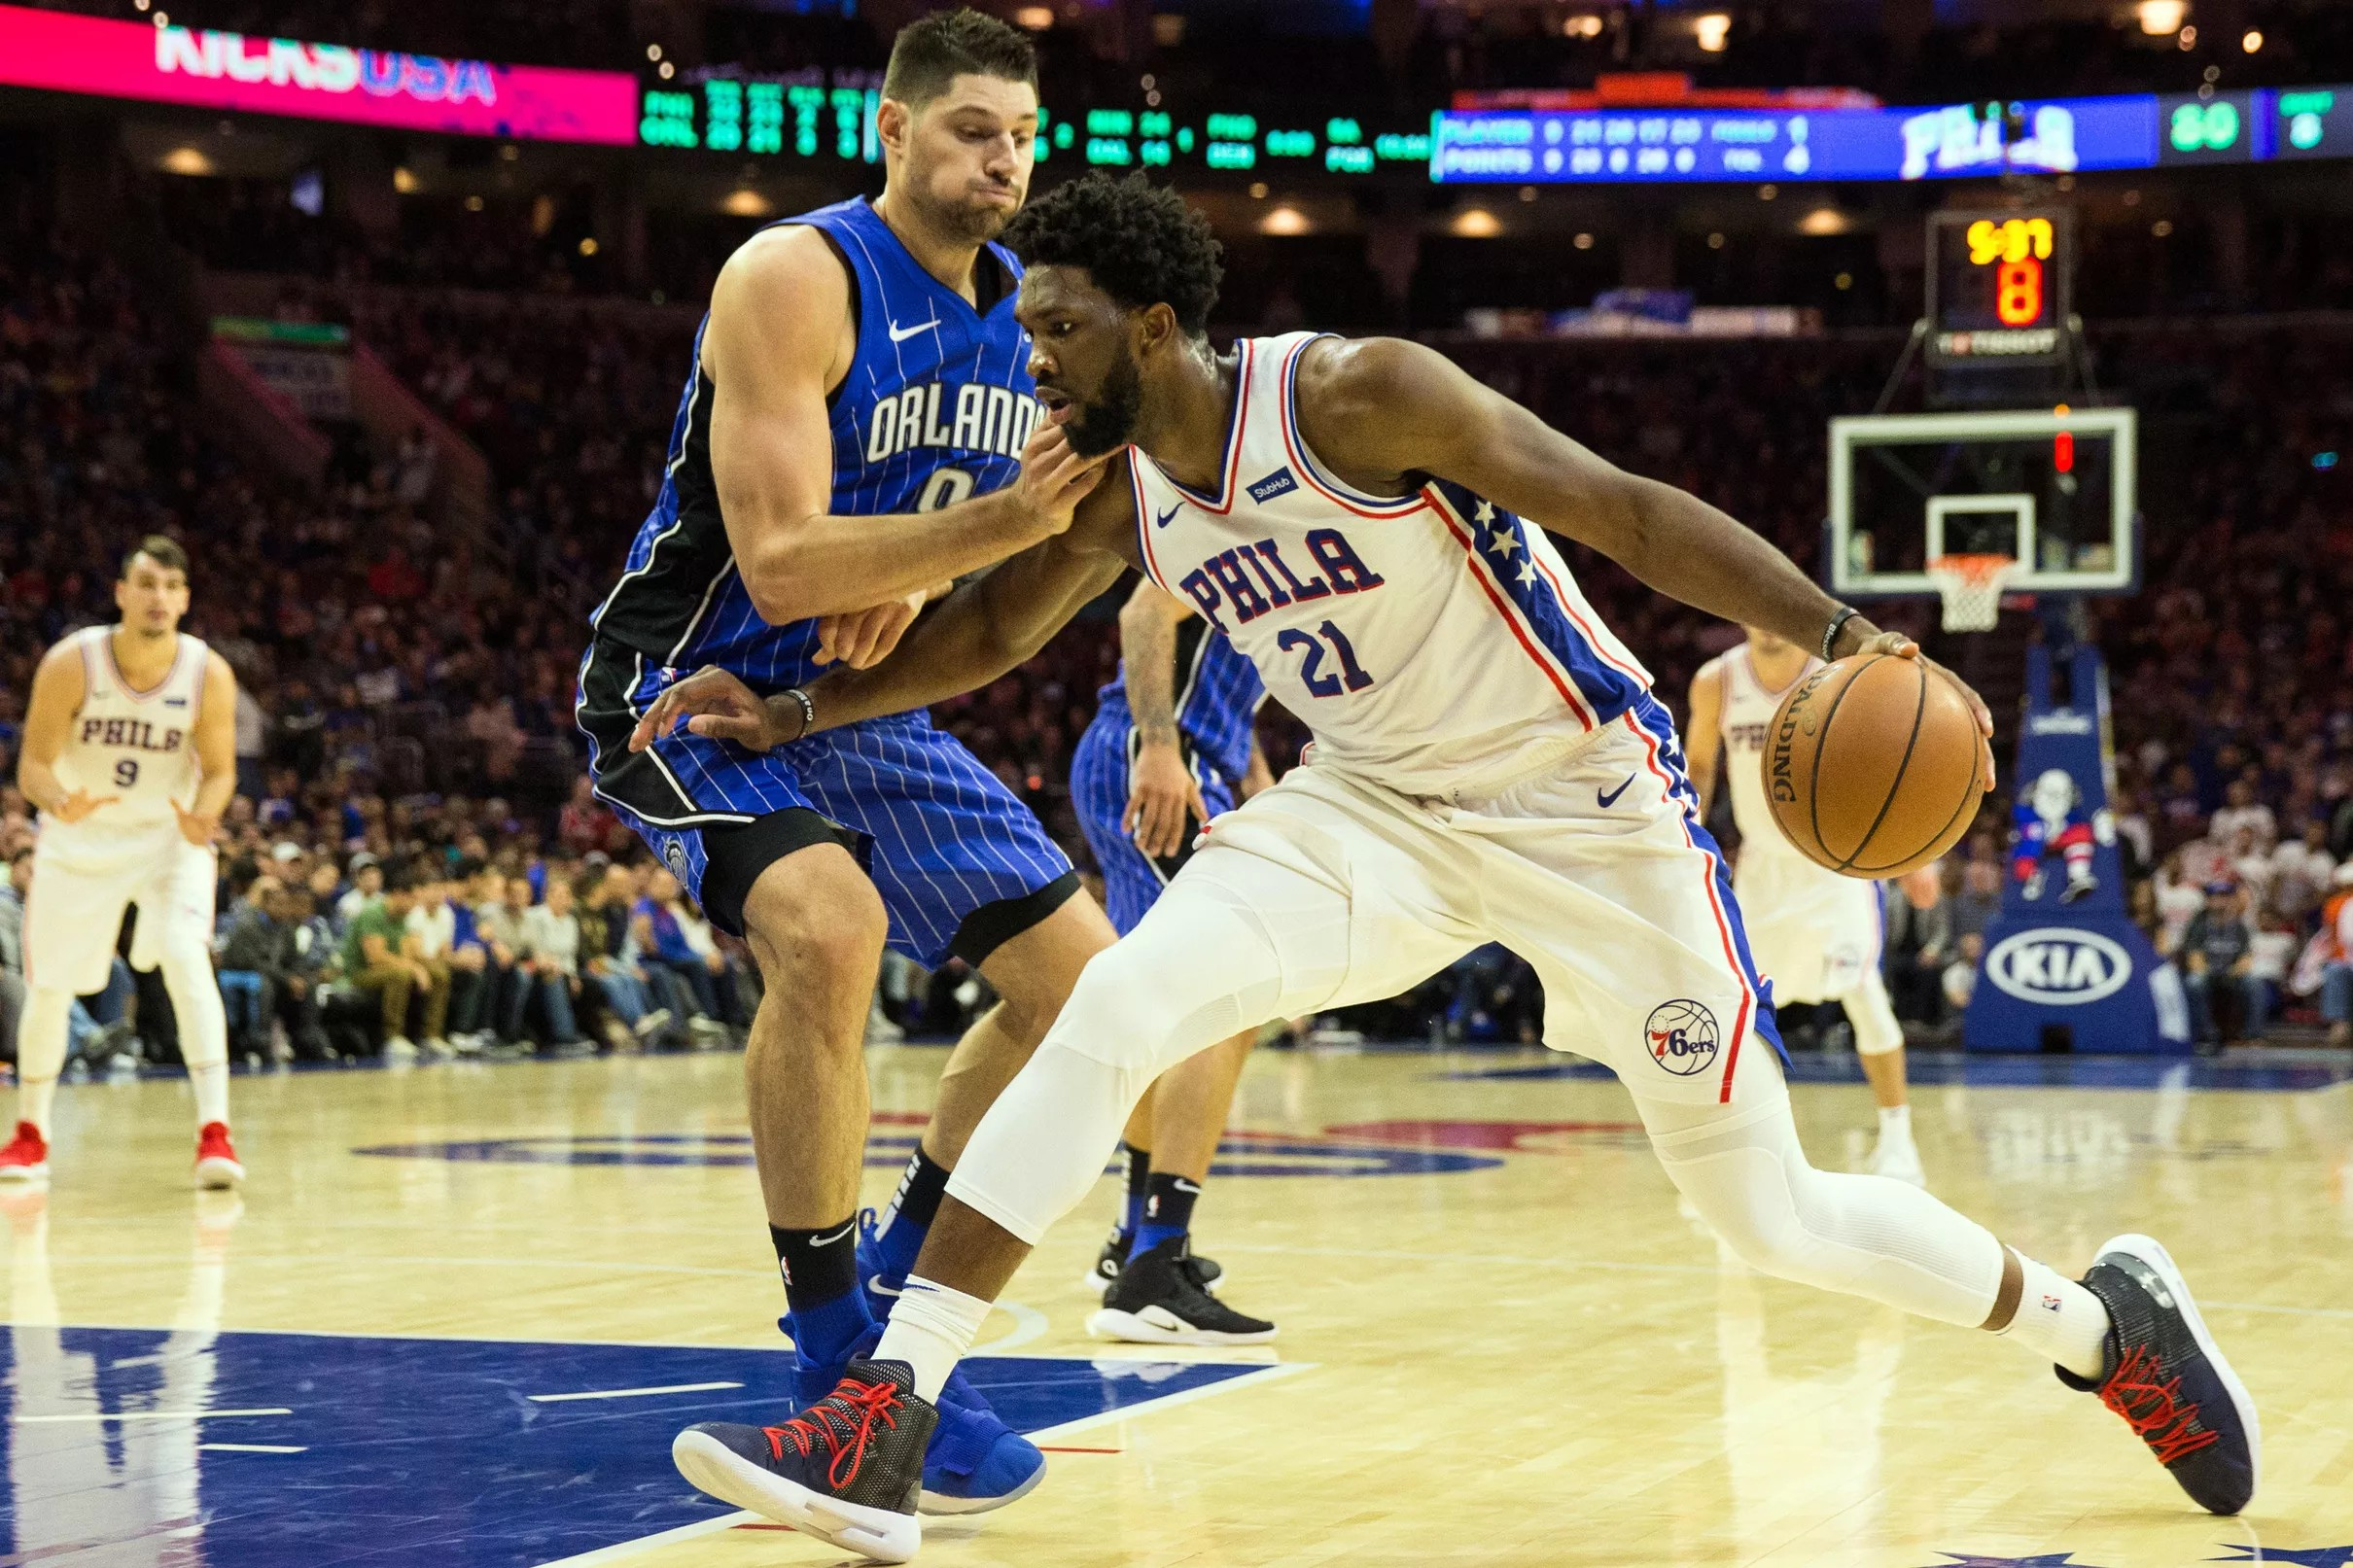 Beyond the box score: Observations from the Sixers' wins over the